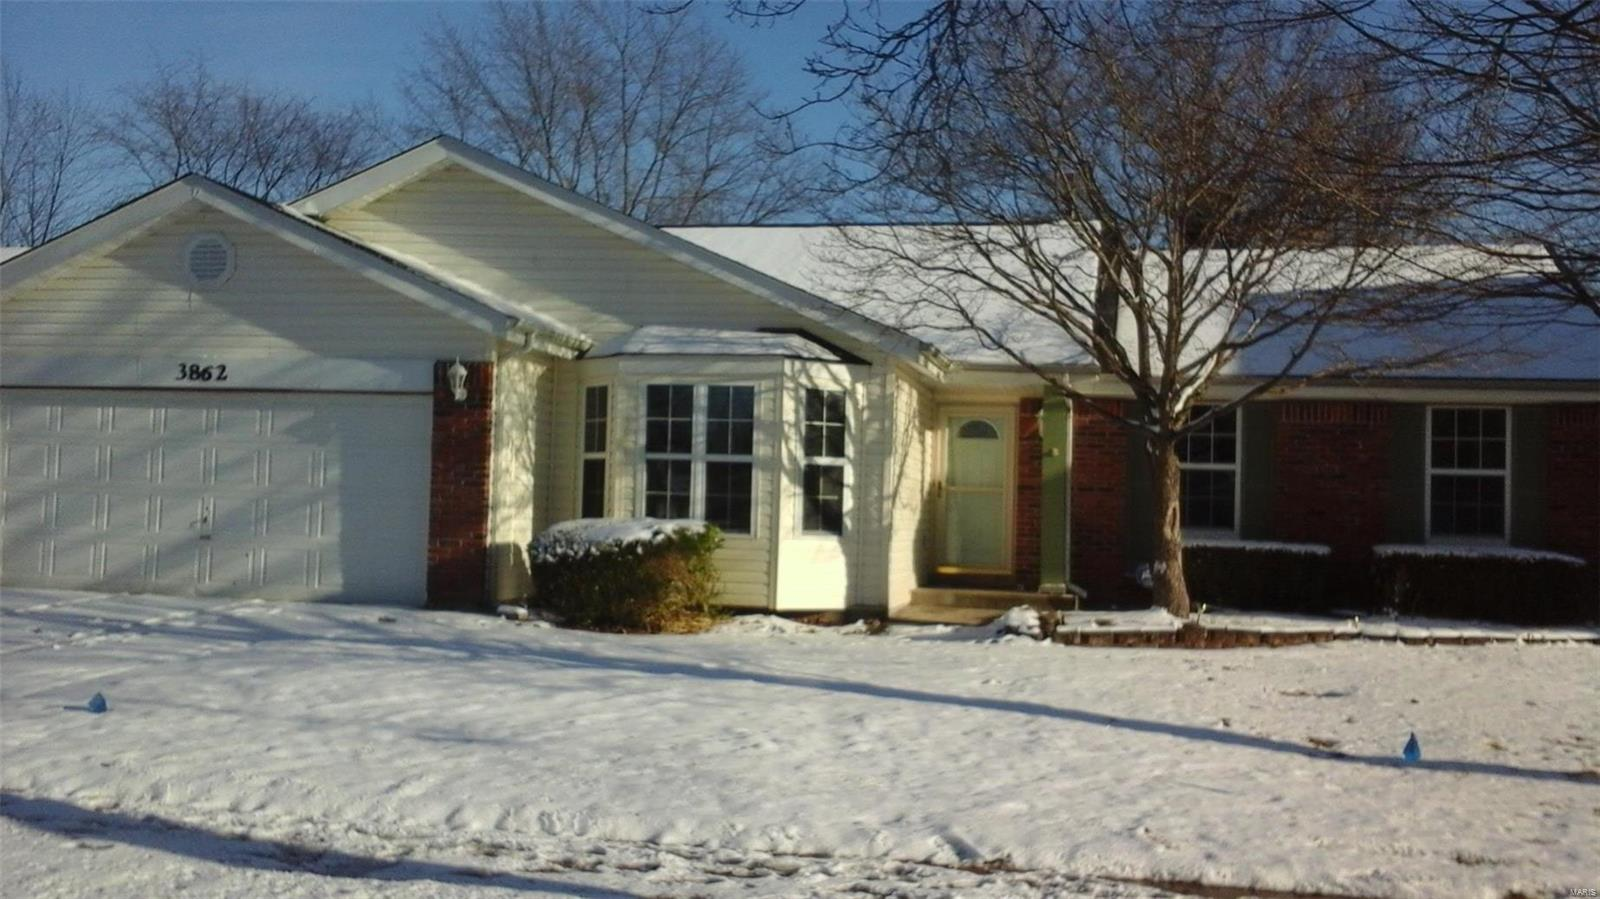 3862 Justice Property Photo - Florissant, MO real estate listing